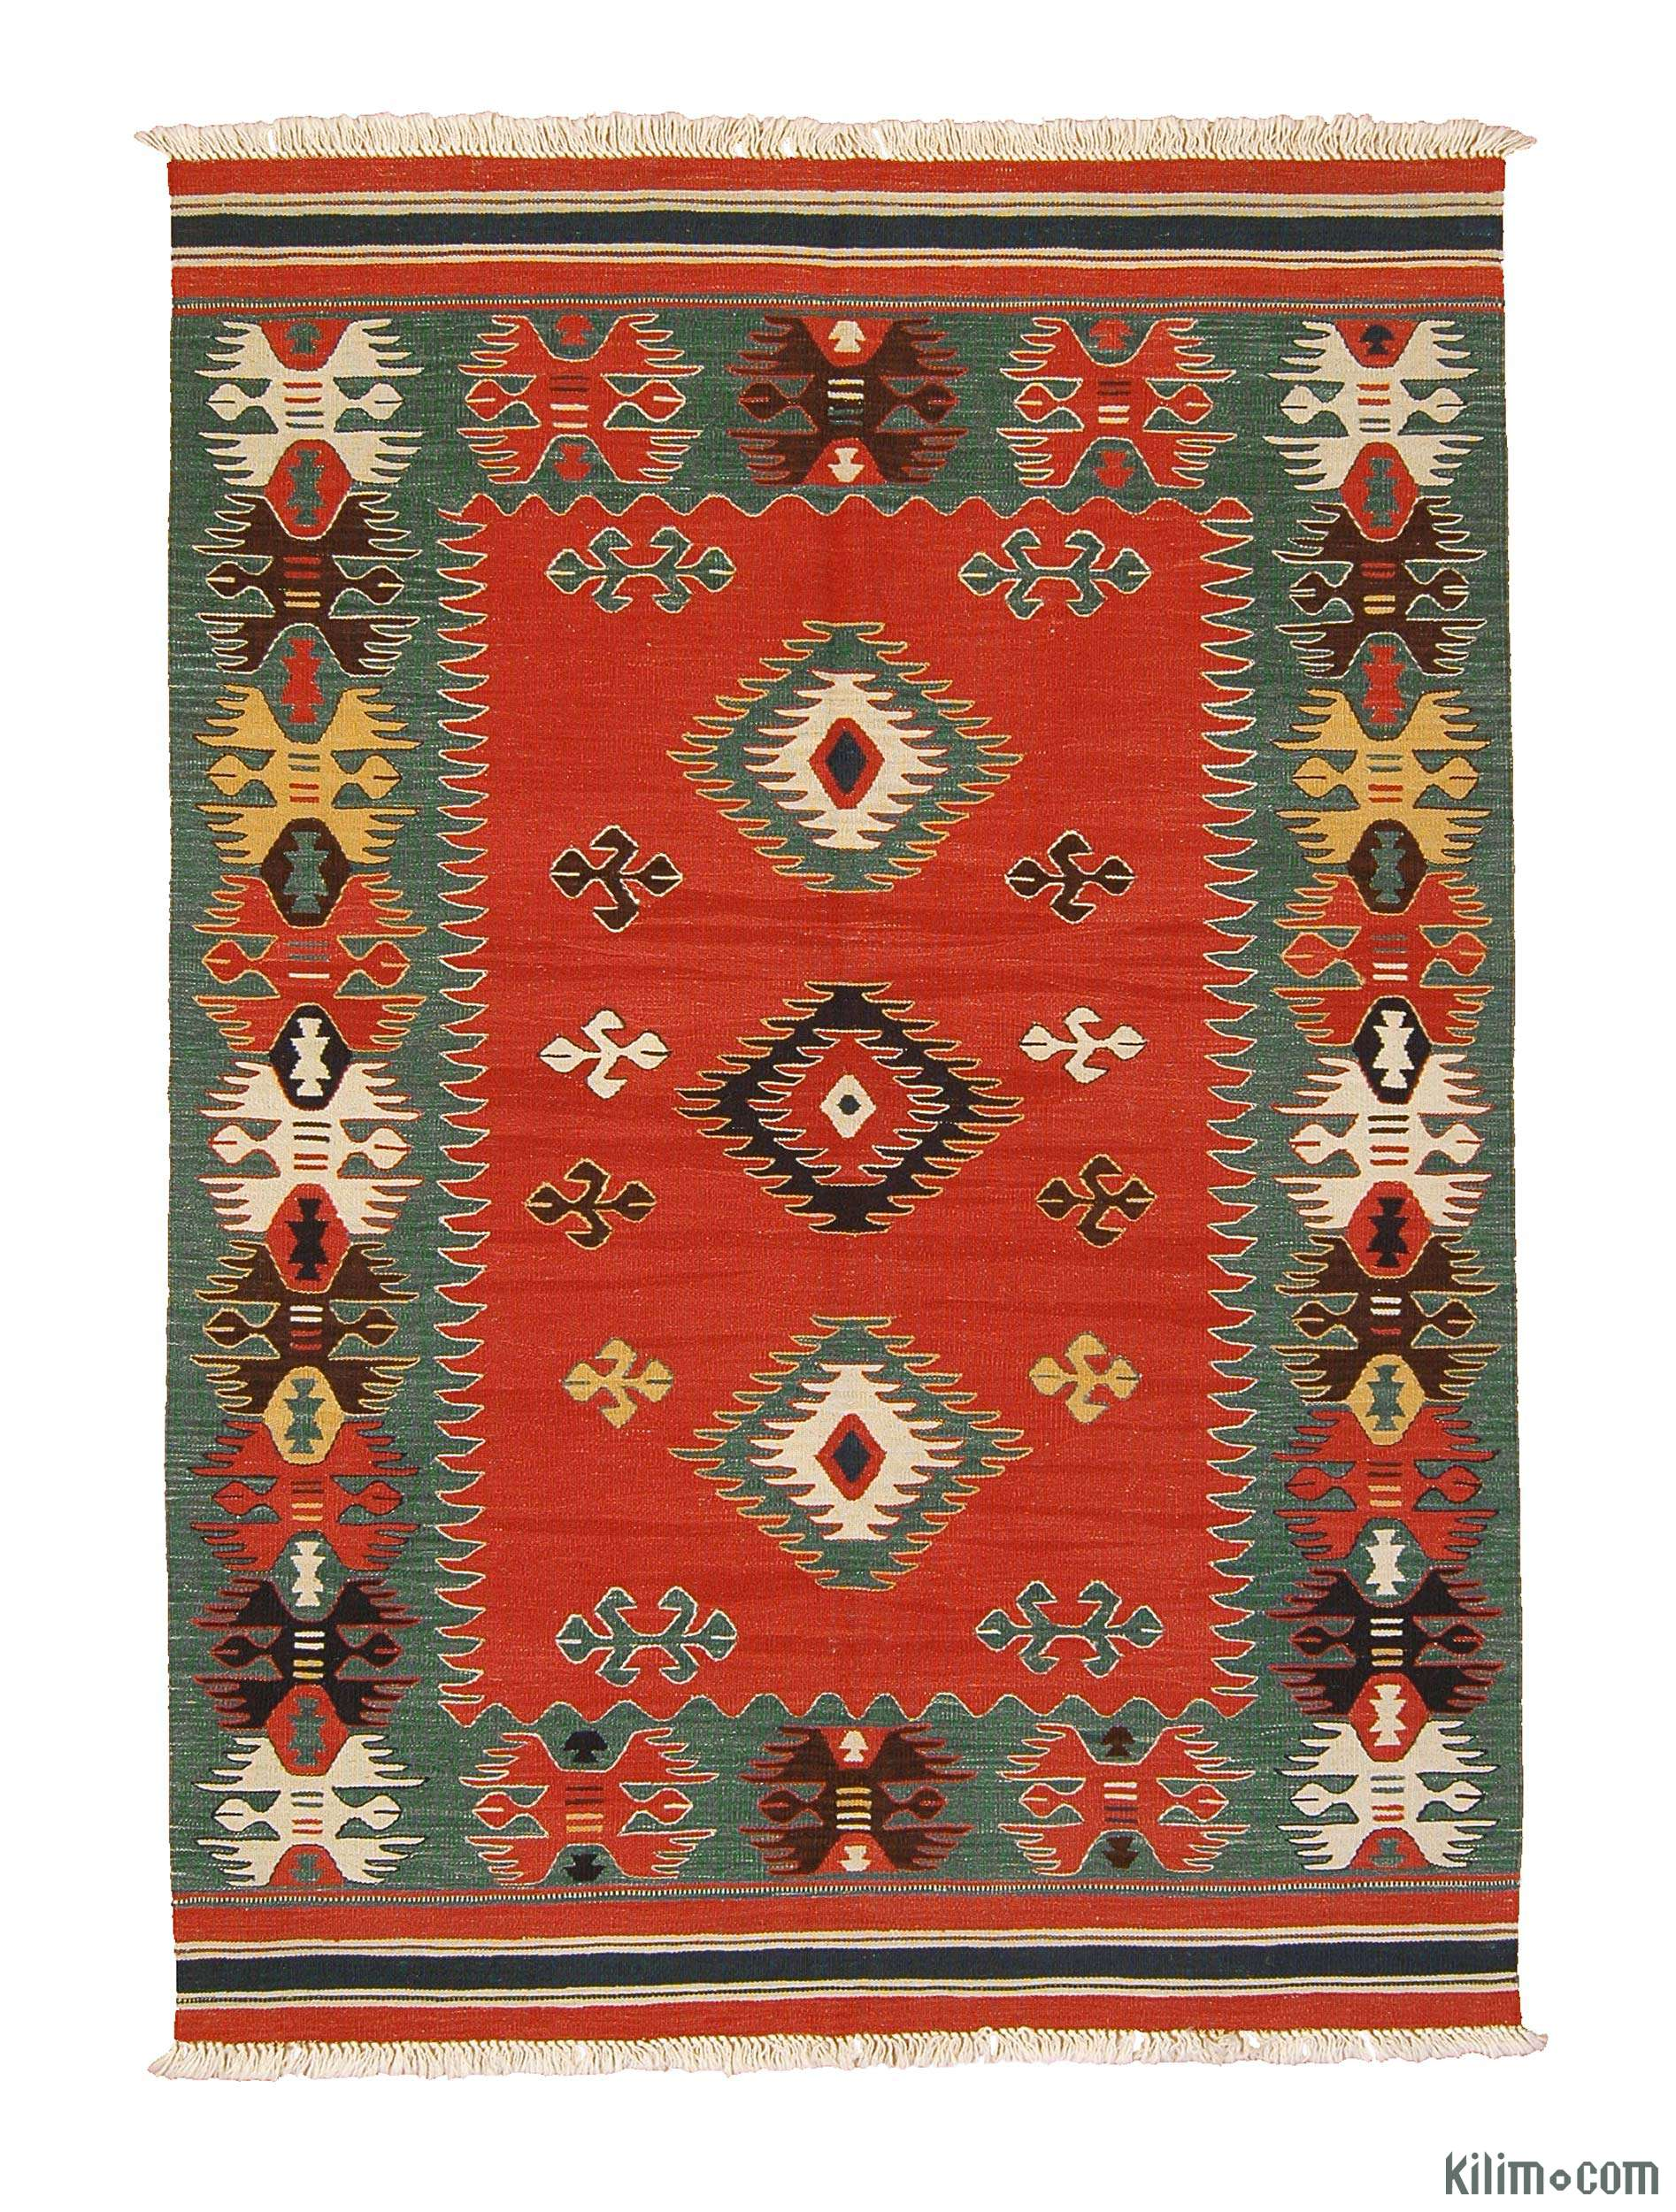 k0003900 new turkish kilim area rug kilim rugs overdyed vintage rugs hand made turkish rugs. Black Bedroom Furniture Sets. Home Design Ideas